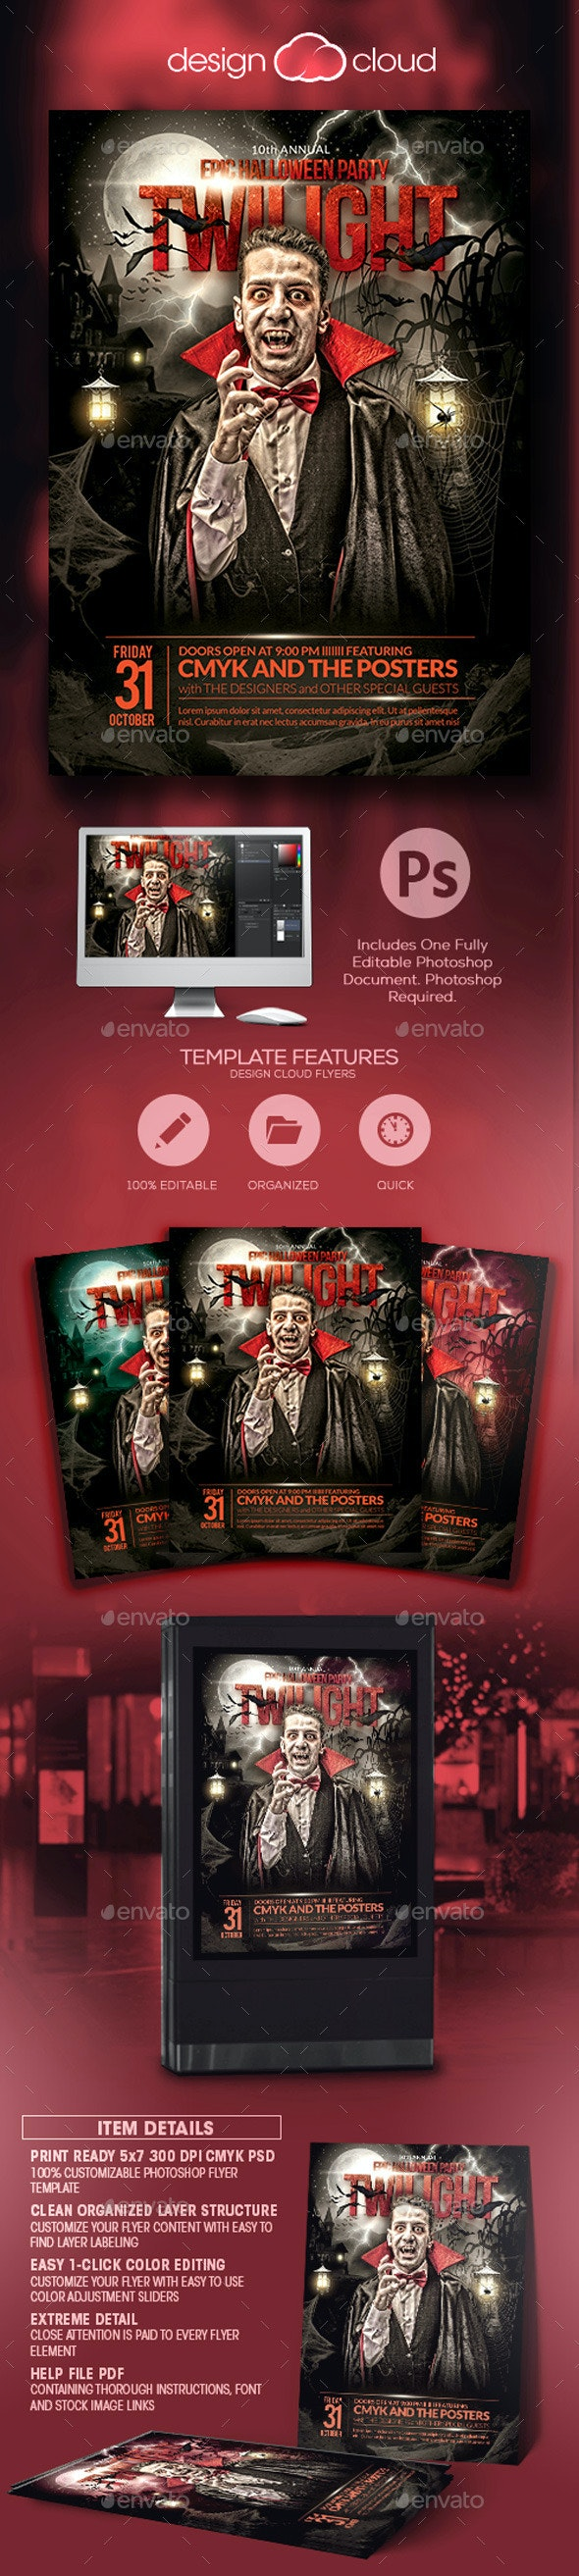 The Epic Twilight Halloween Party Flyer Template - Holidays Events